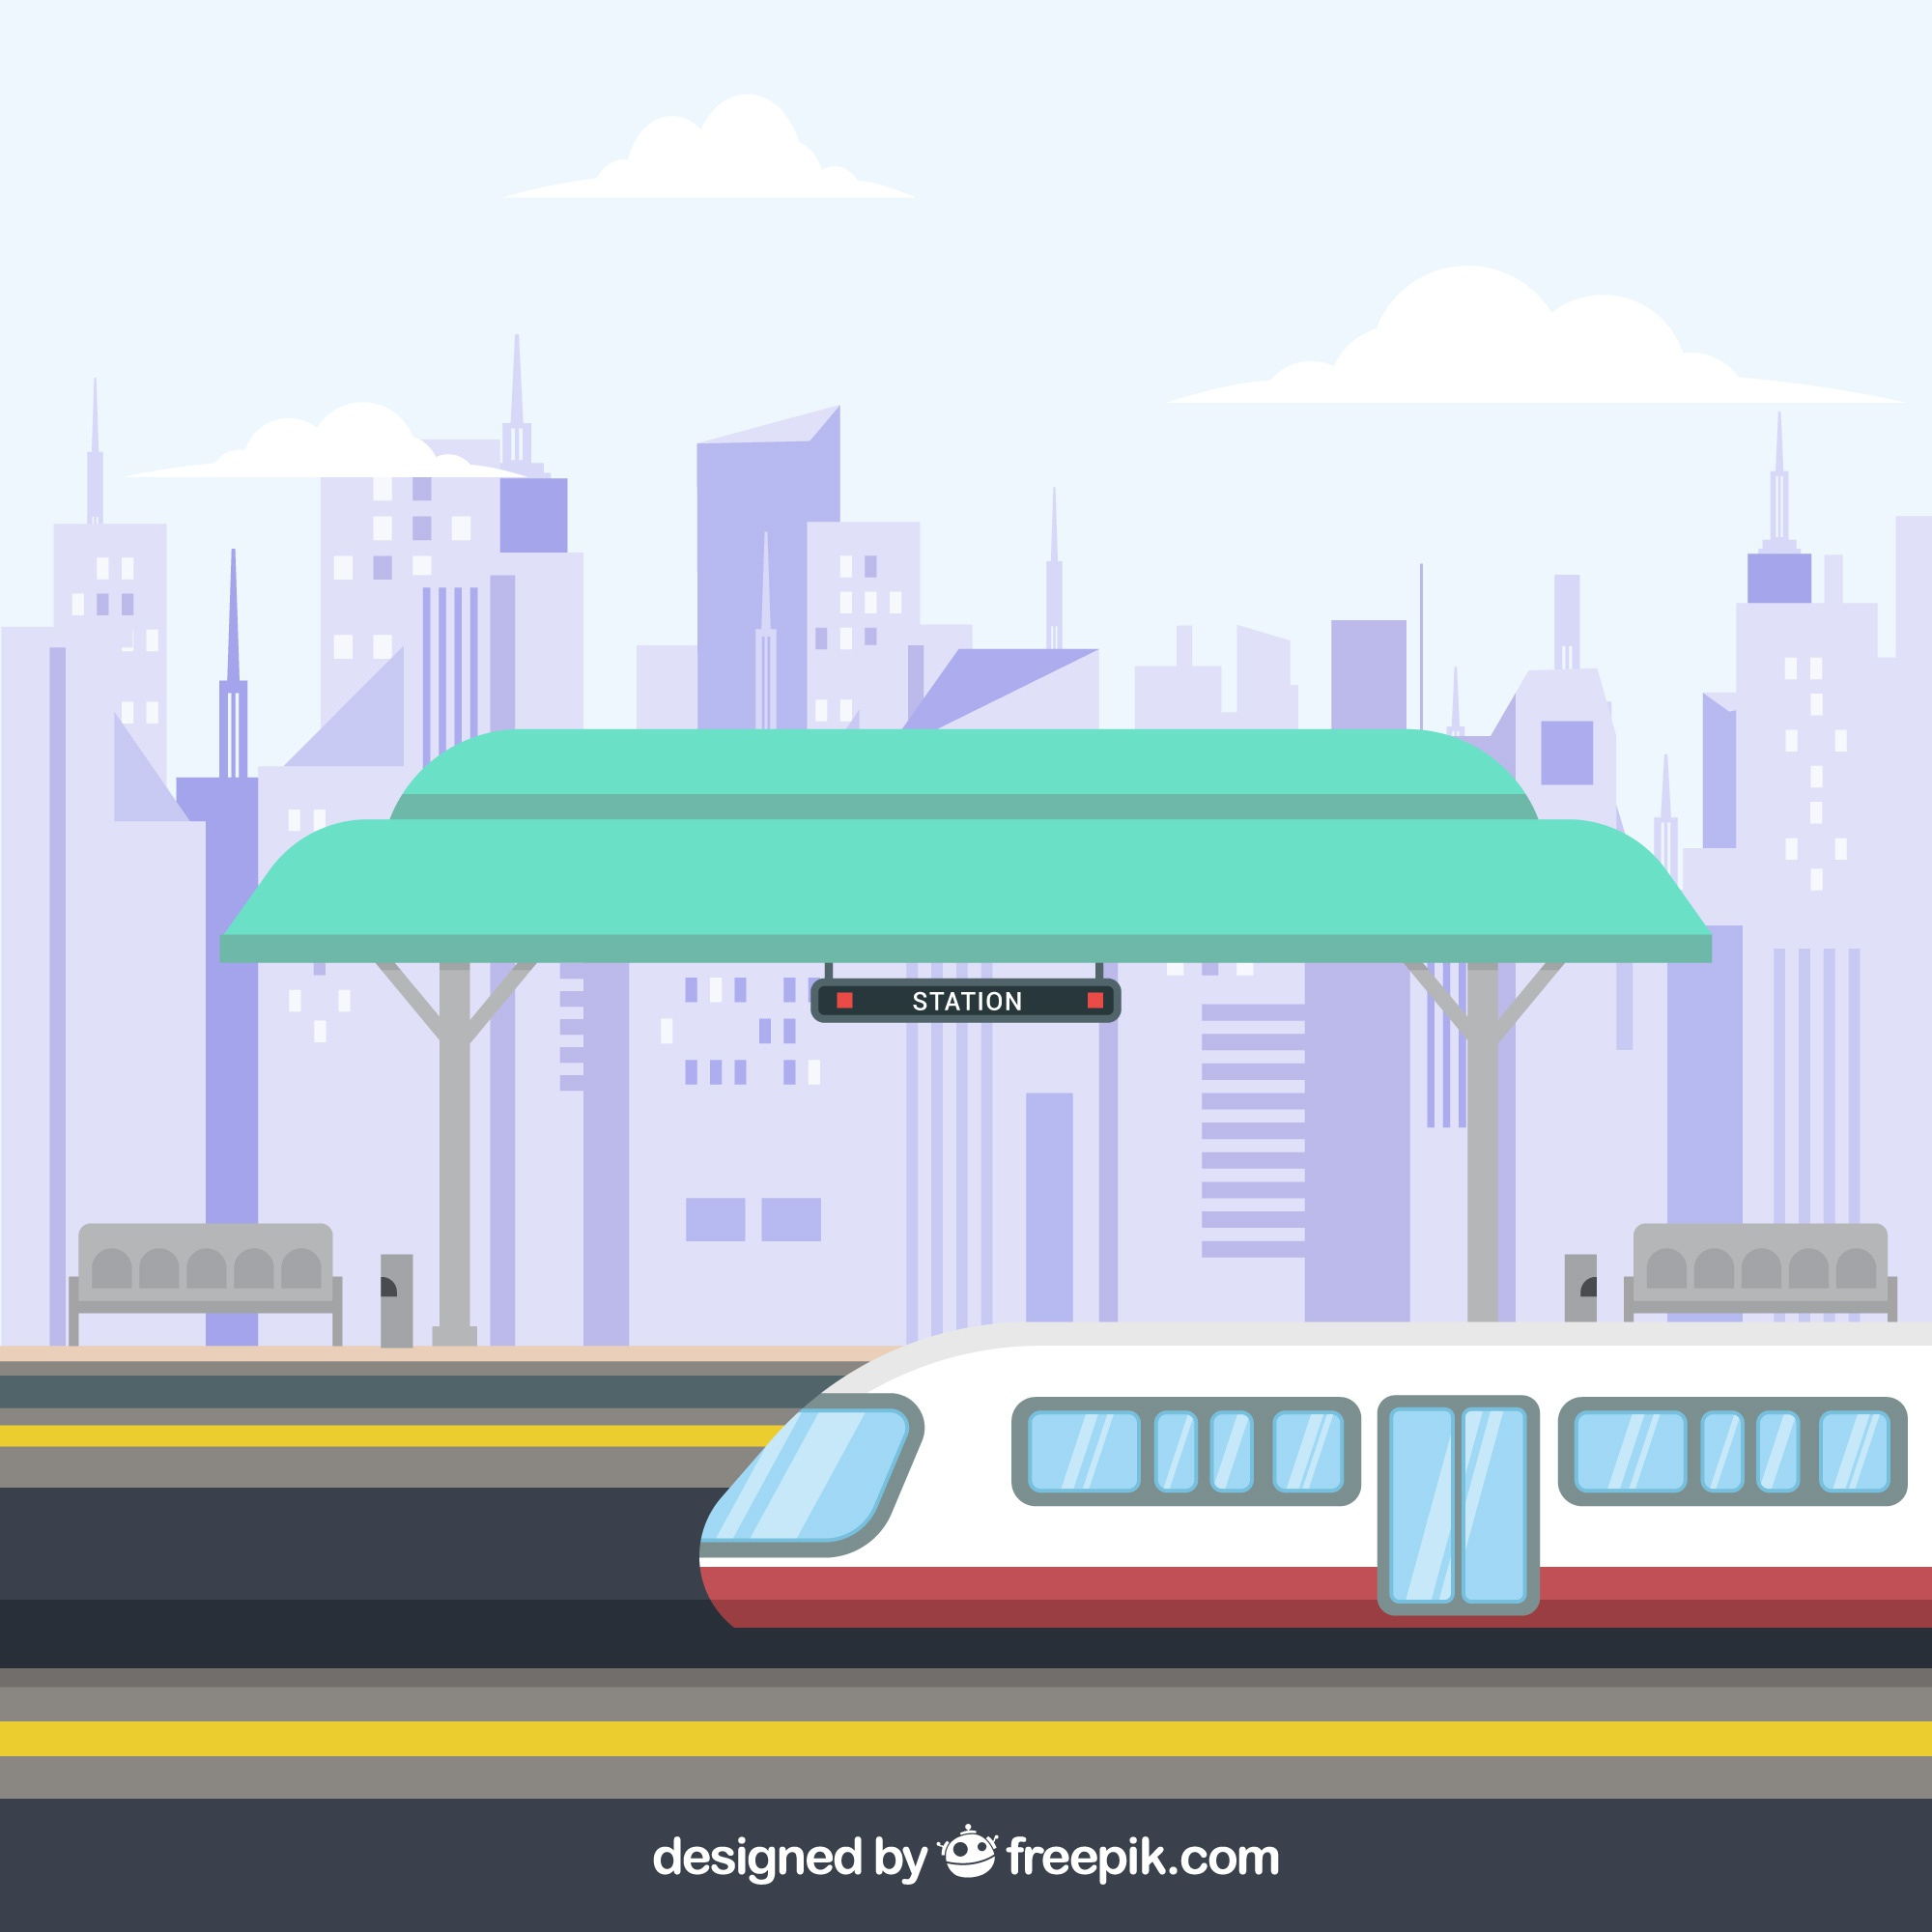 Flat train station with buildings background